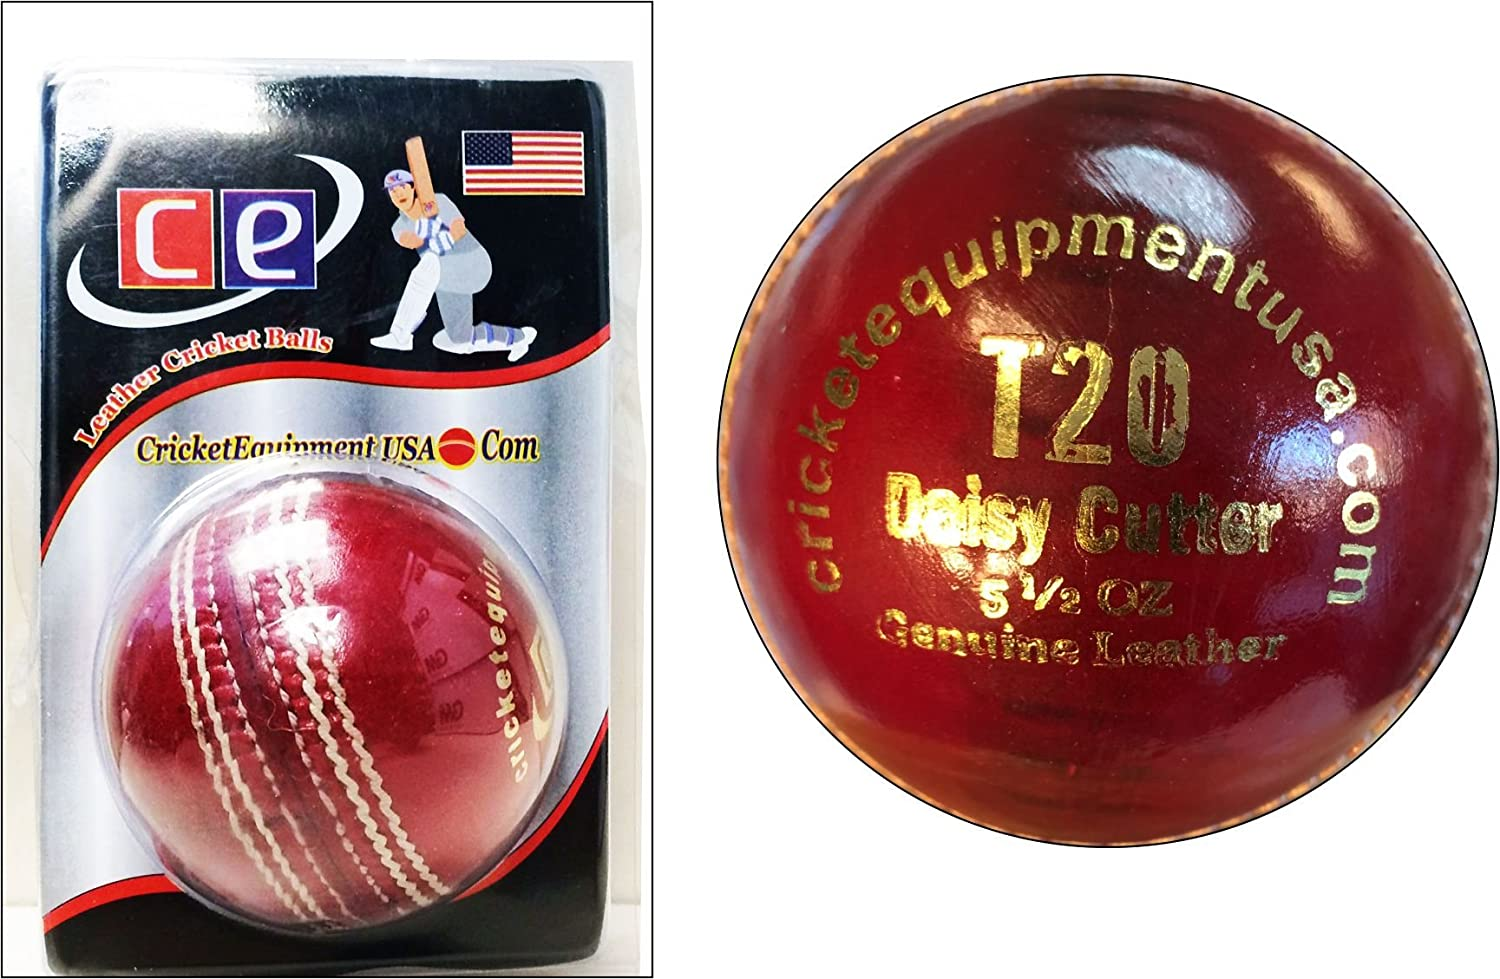 Ce T20 Daisy Cutter Leather Cricket Ball 4 Piece Leather Seasoned Ball By Cricket Equipment Usa 2016 Red